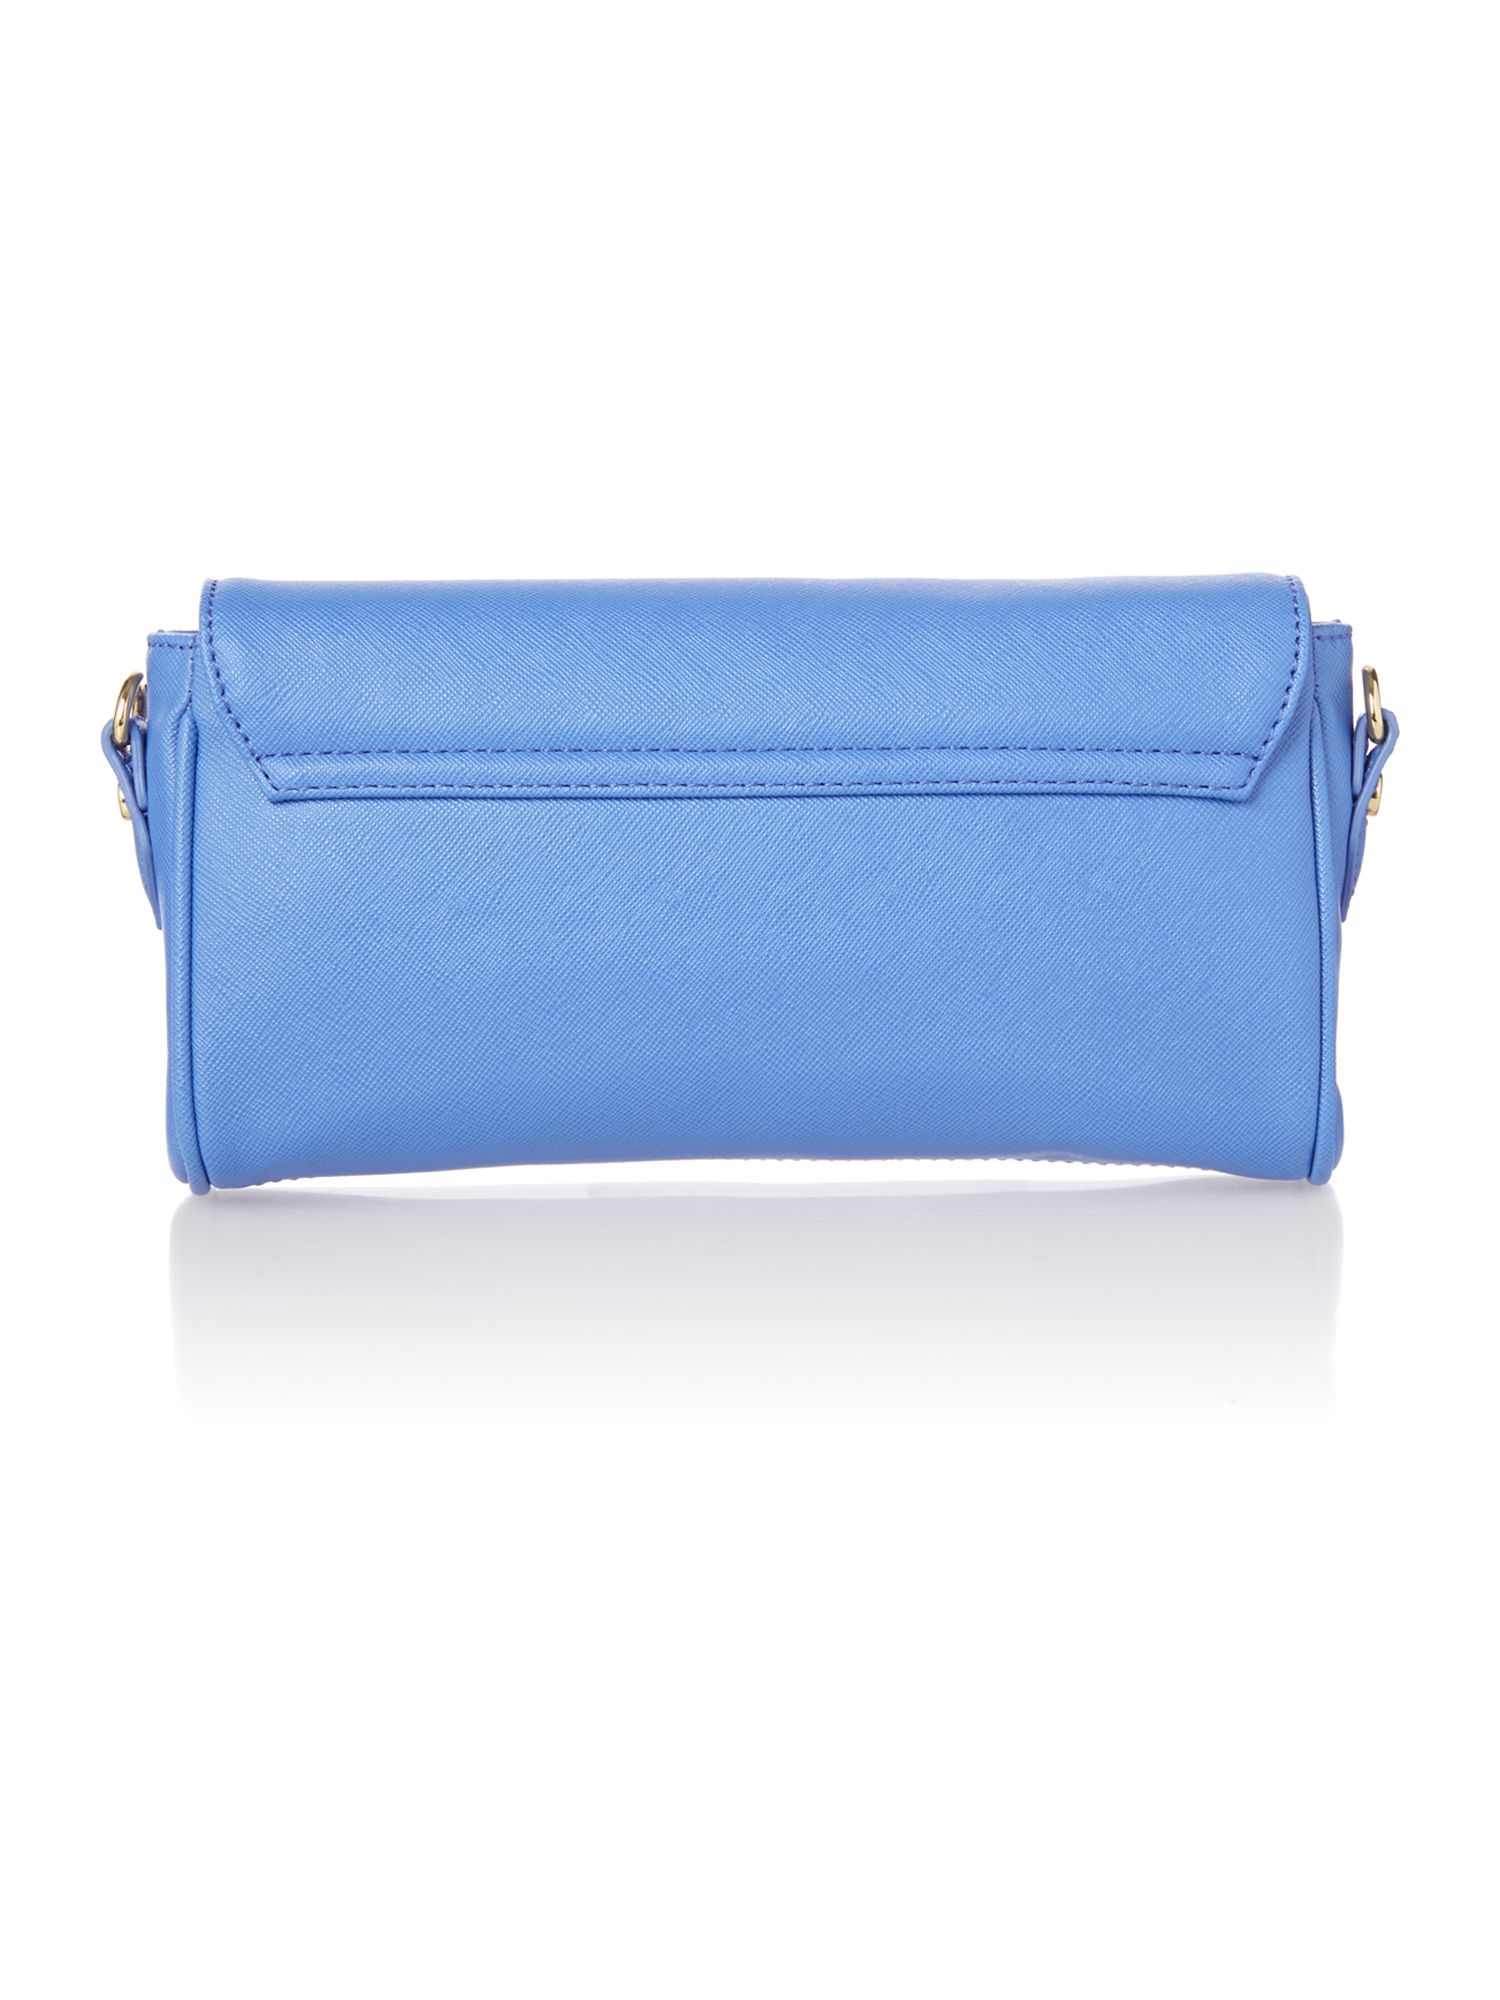 Divina small blue flapover cross body bag